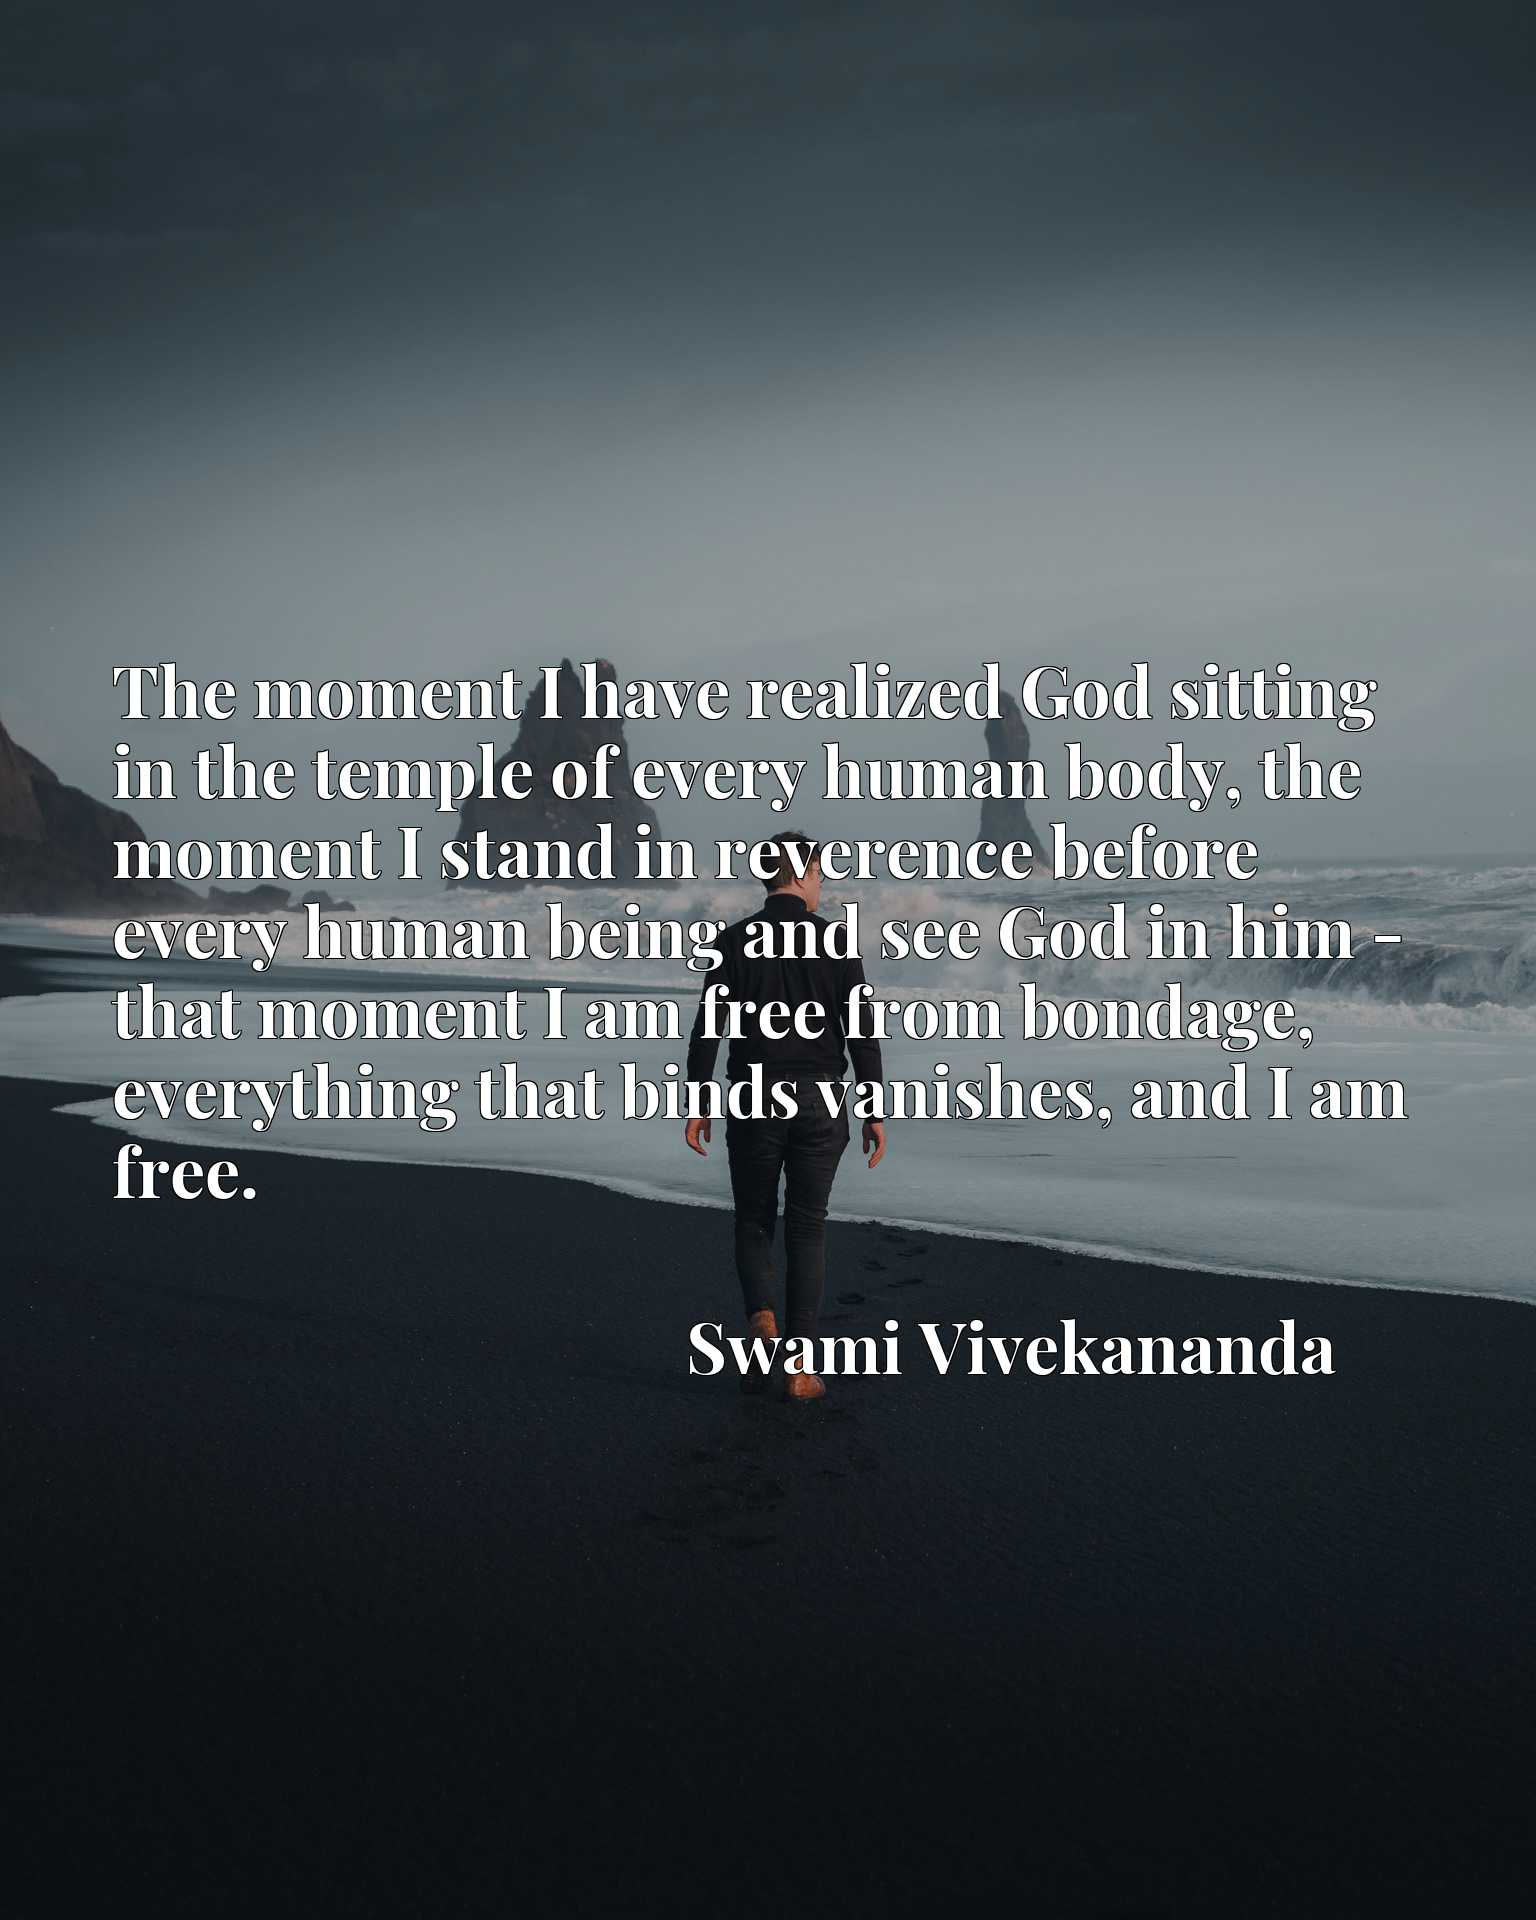 The moment I have realized God sitting in the temple of every human body, the moment I stand in reverence before every human being and see God in him - that moment I am free from bondage, everything that binds vanishes, and I am free.